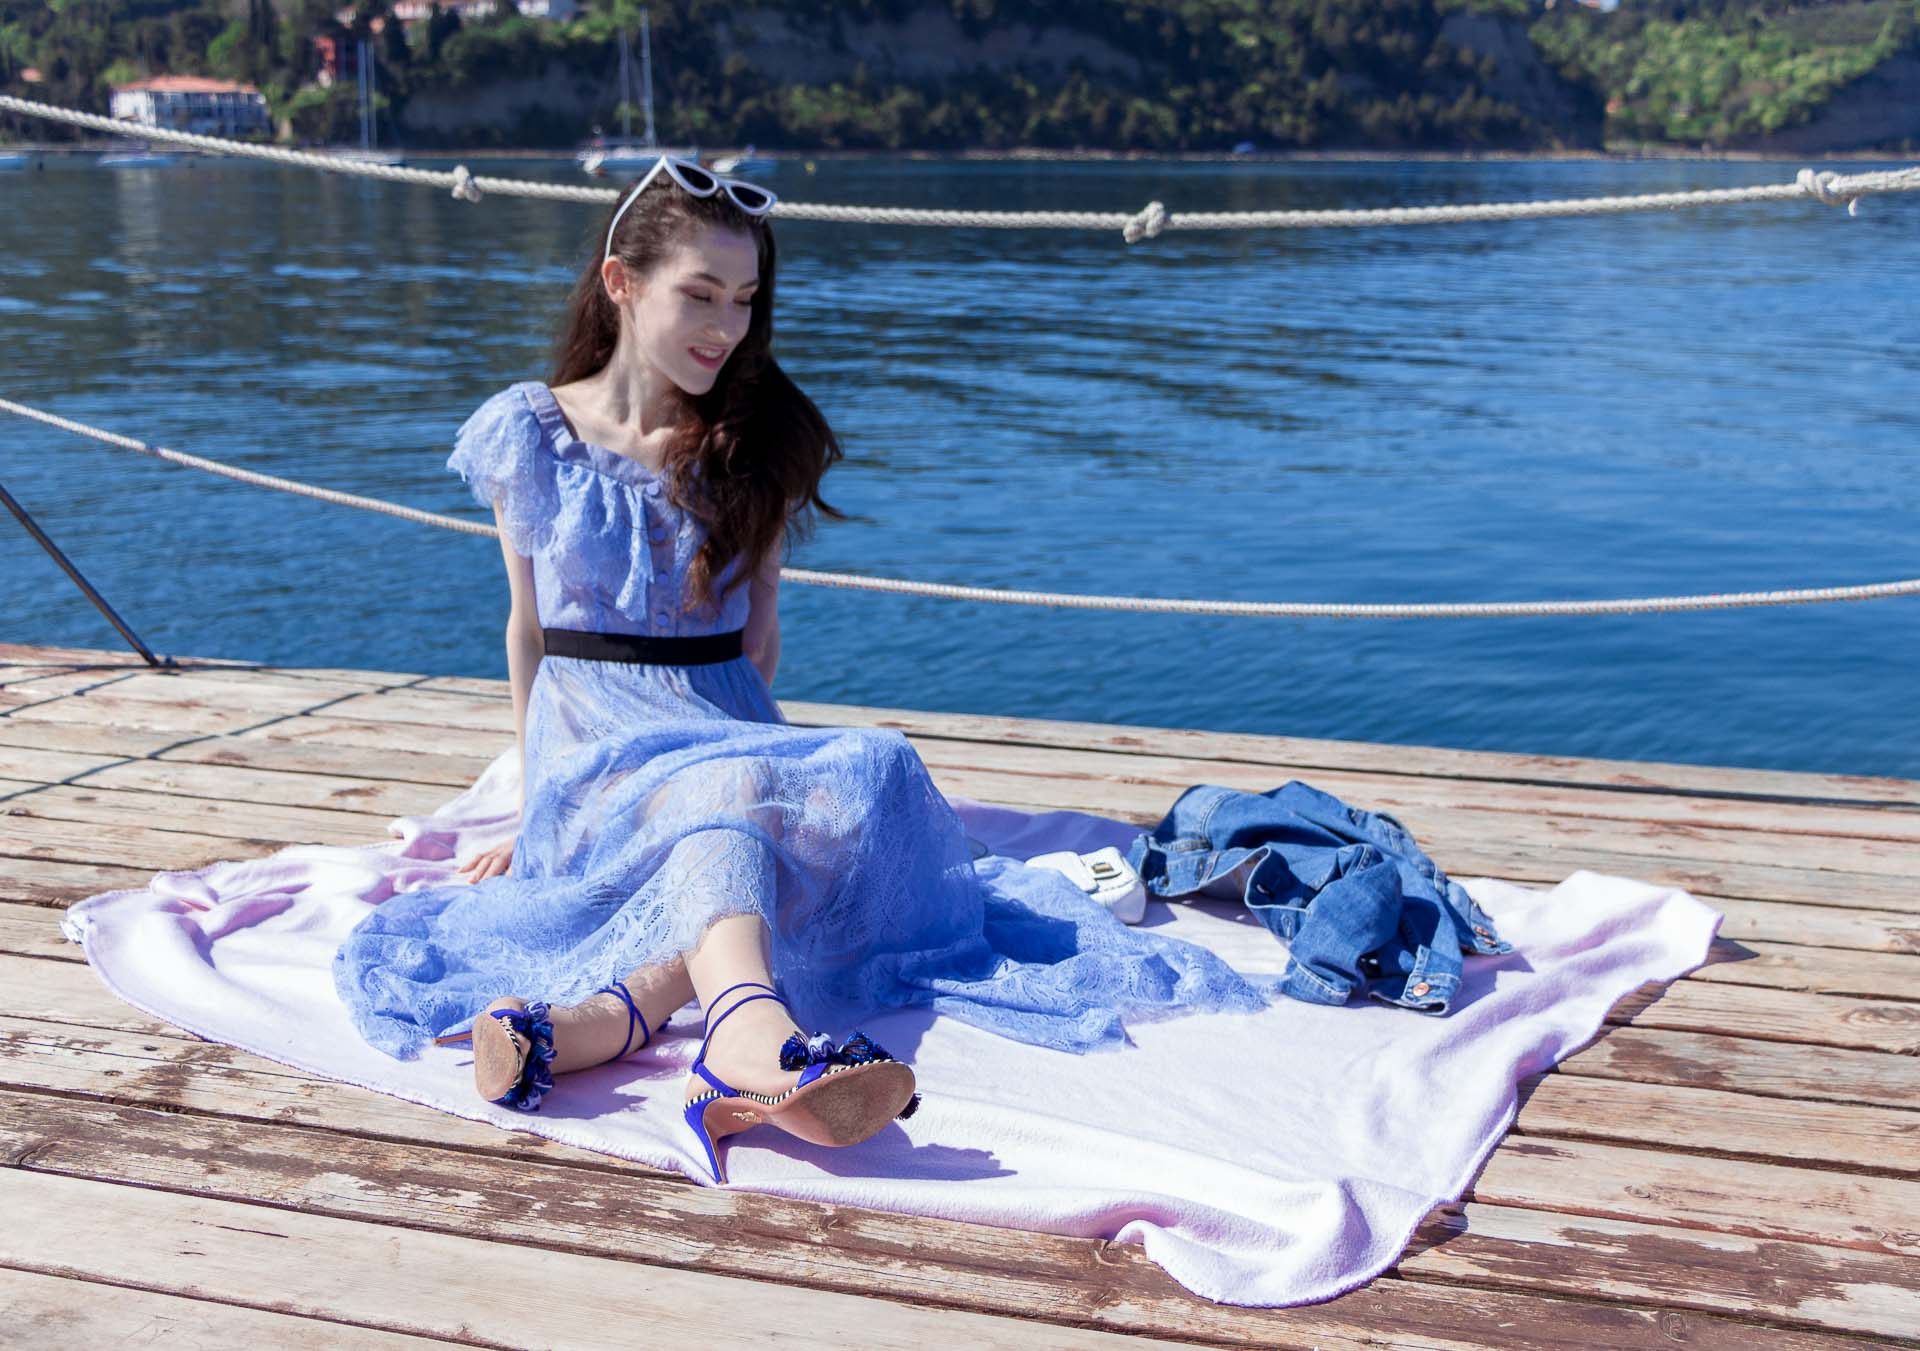 Veronika Lipar Fashion Blogger of Brunette from Wall Street dressed in blue off the shoulder midi lace dress from Self-Portrait, white chain shoulder bag, Aquazzura blue pom pom tassels sandals, white Lolita cat-eye sunglasses for romantic summer date picnic